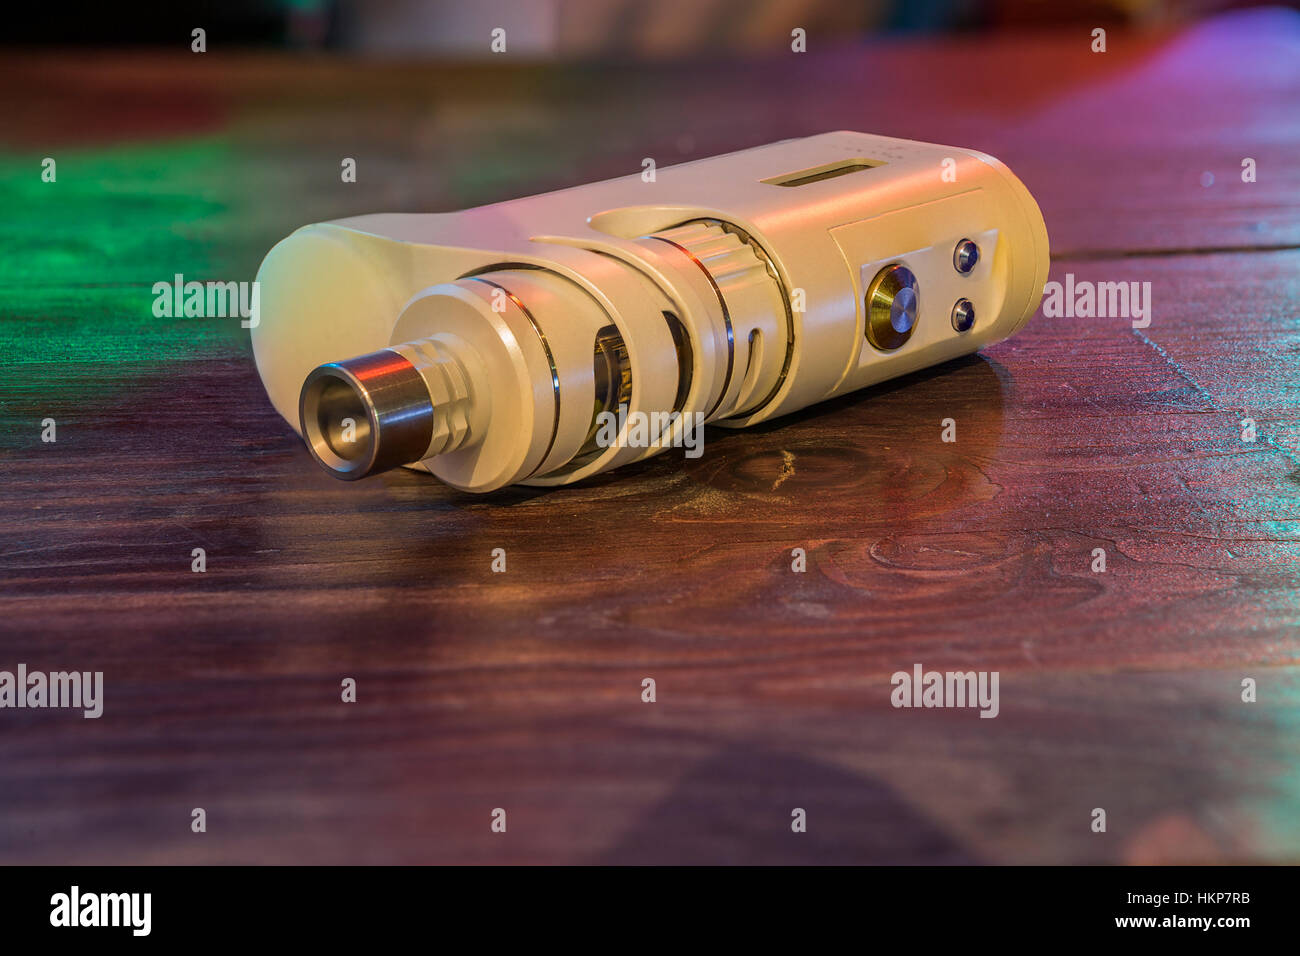 Electronic cigarette at the bar. Stock Photo